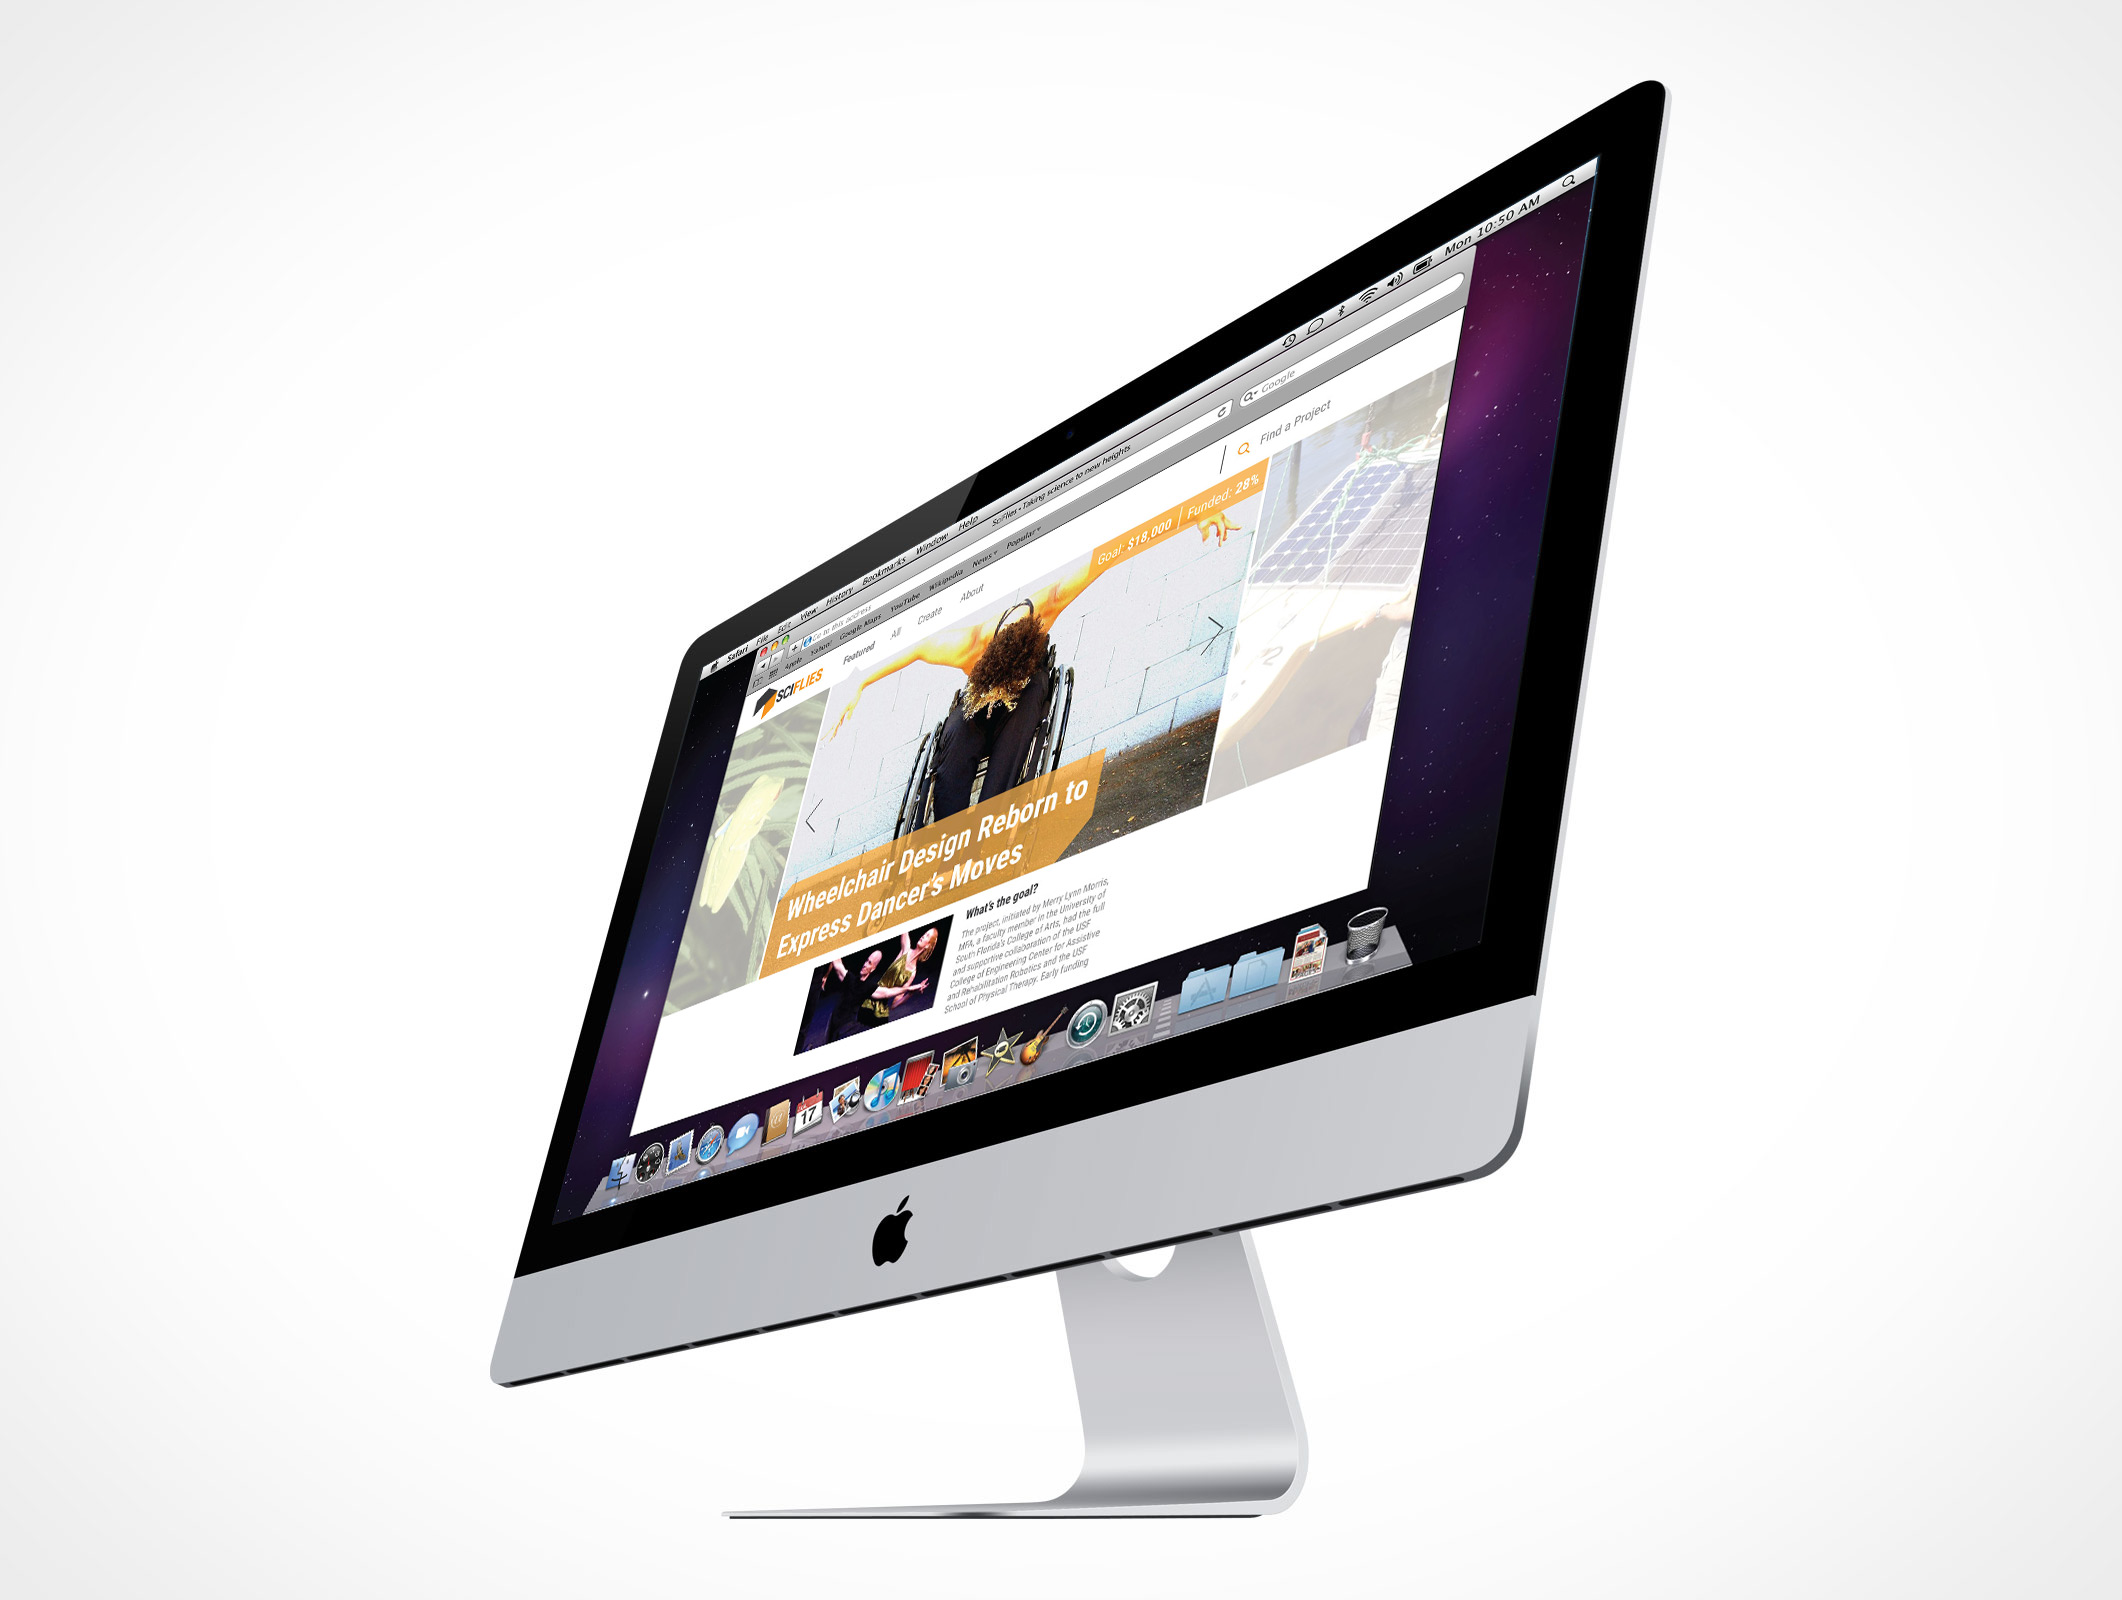 An image of a person dancing in a wheelchair, as mocked up on a website on the screen of a Macbook Pro.